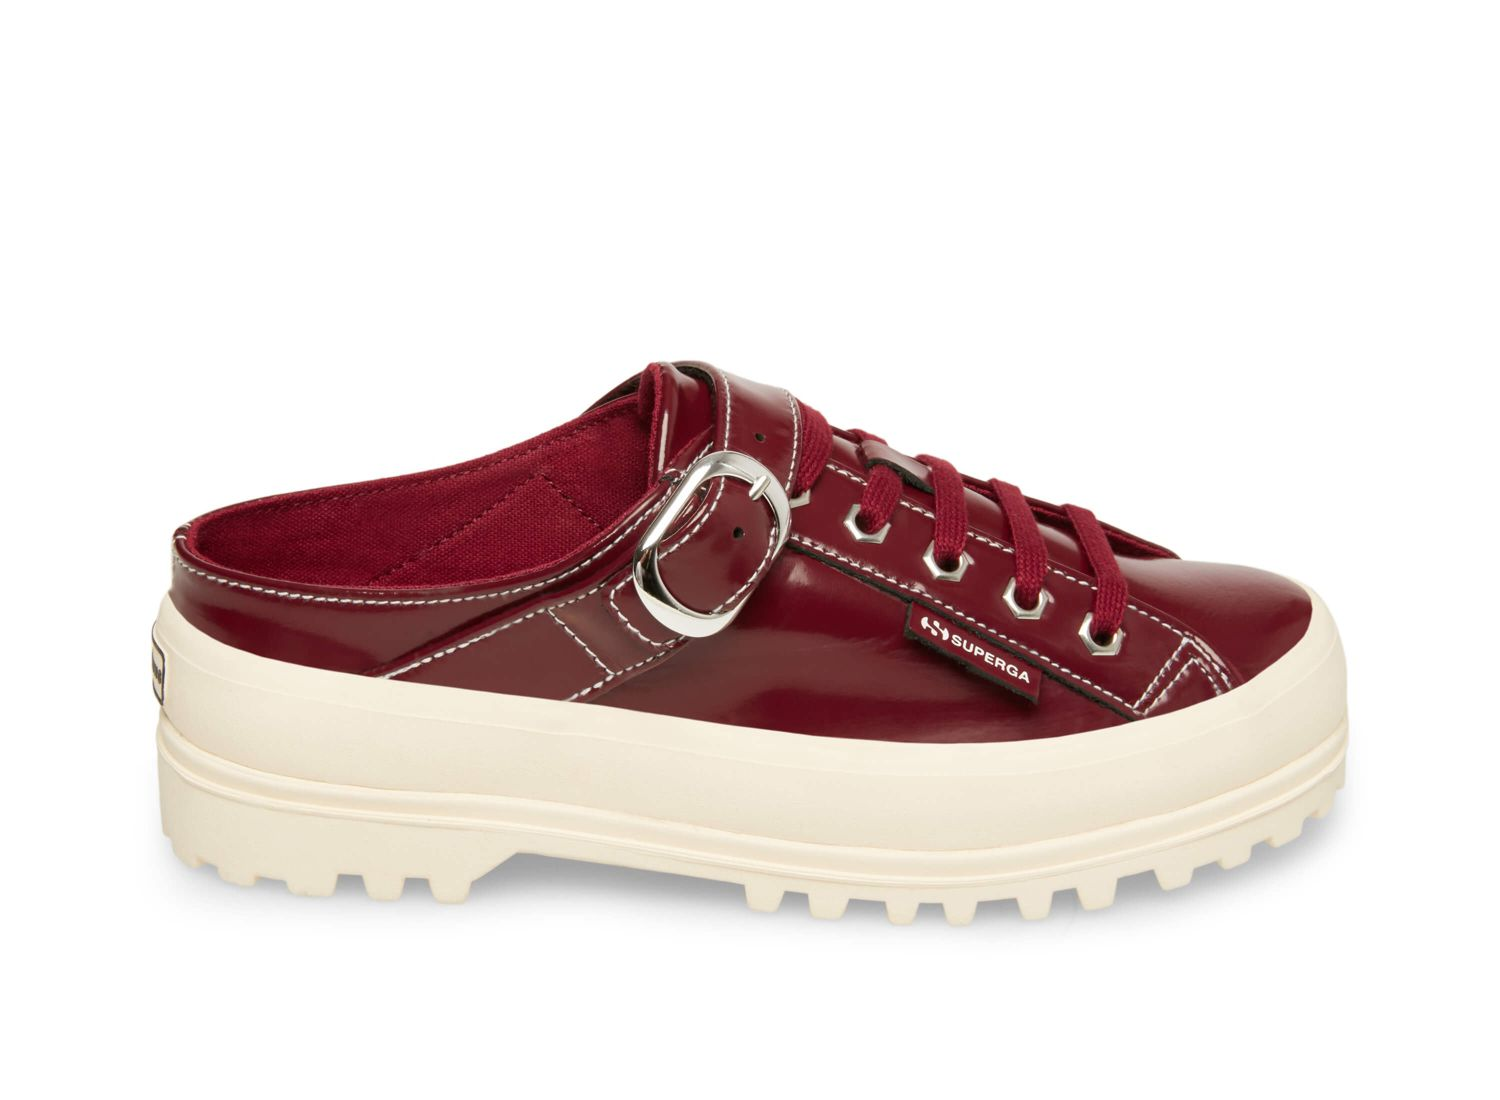 2279 ALPINAPATENTLEAW OX BLOOD